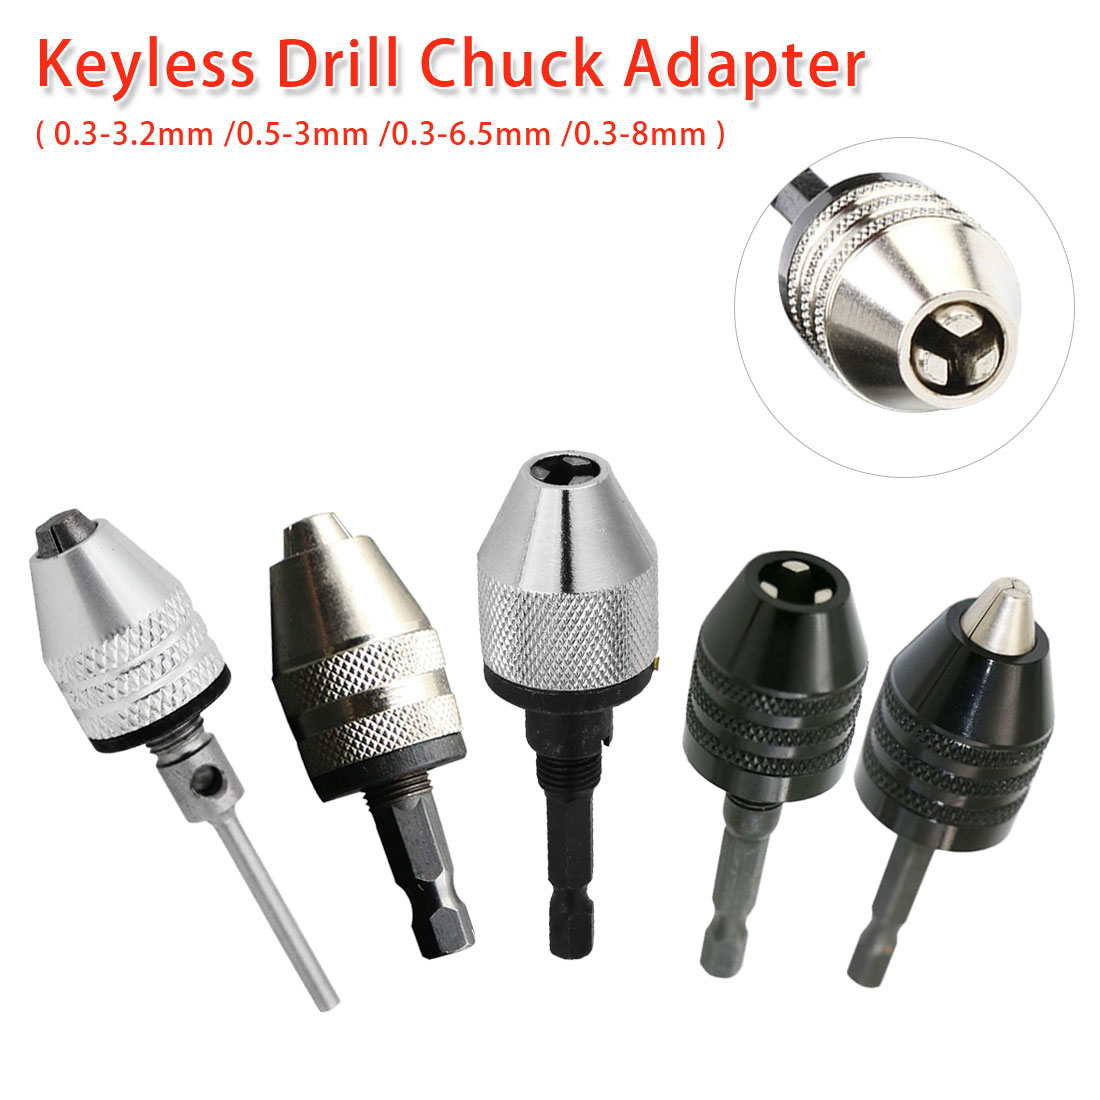 0.3-3.2mm/0.5-3mm/0.3-6.5mm/0.3-8mm Keyless Shaft Chuck Clamp Hex/ Round Shank Electric Motor Drill Bit Tool Drill Chuck Adapter